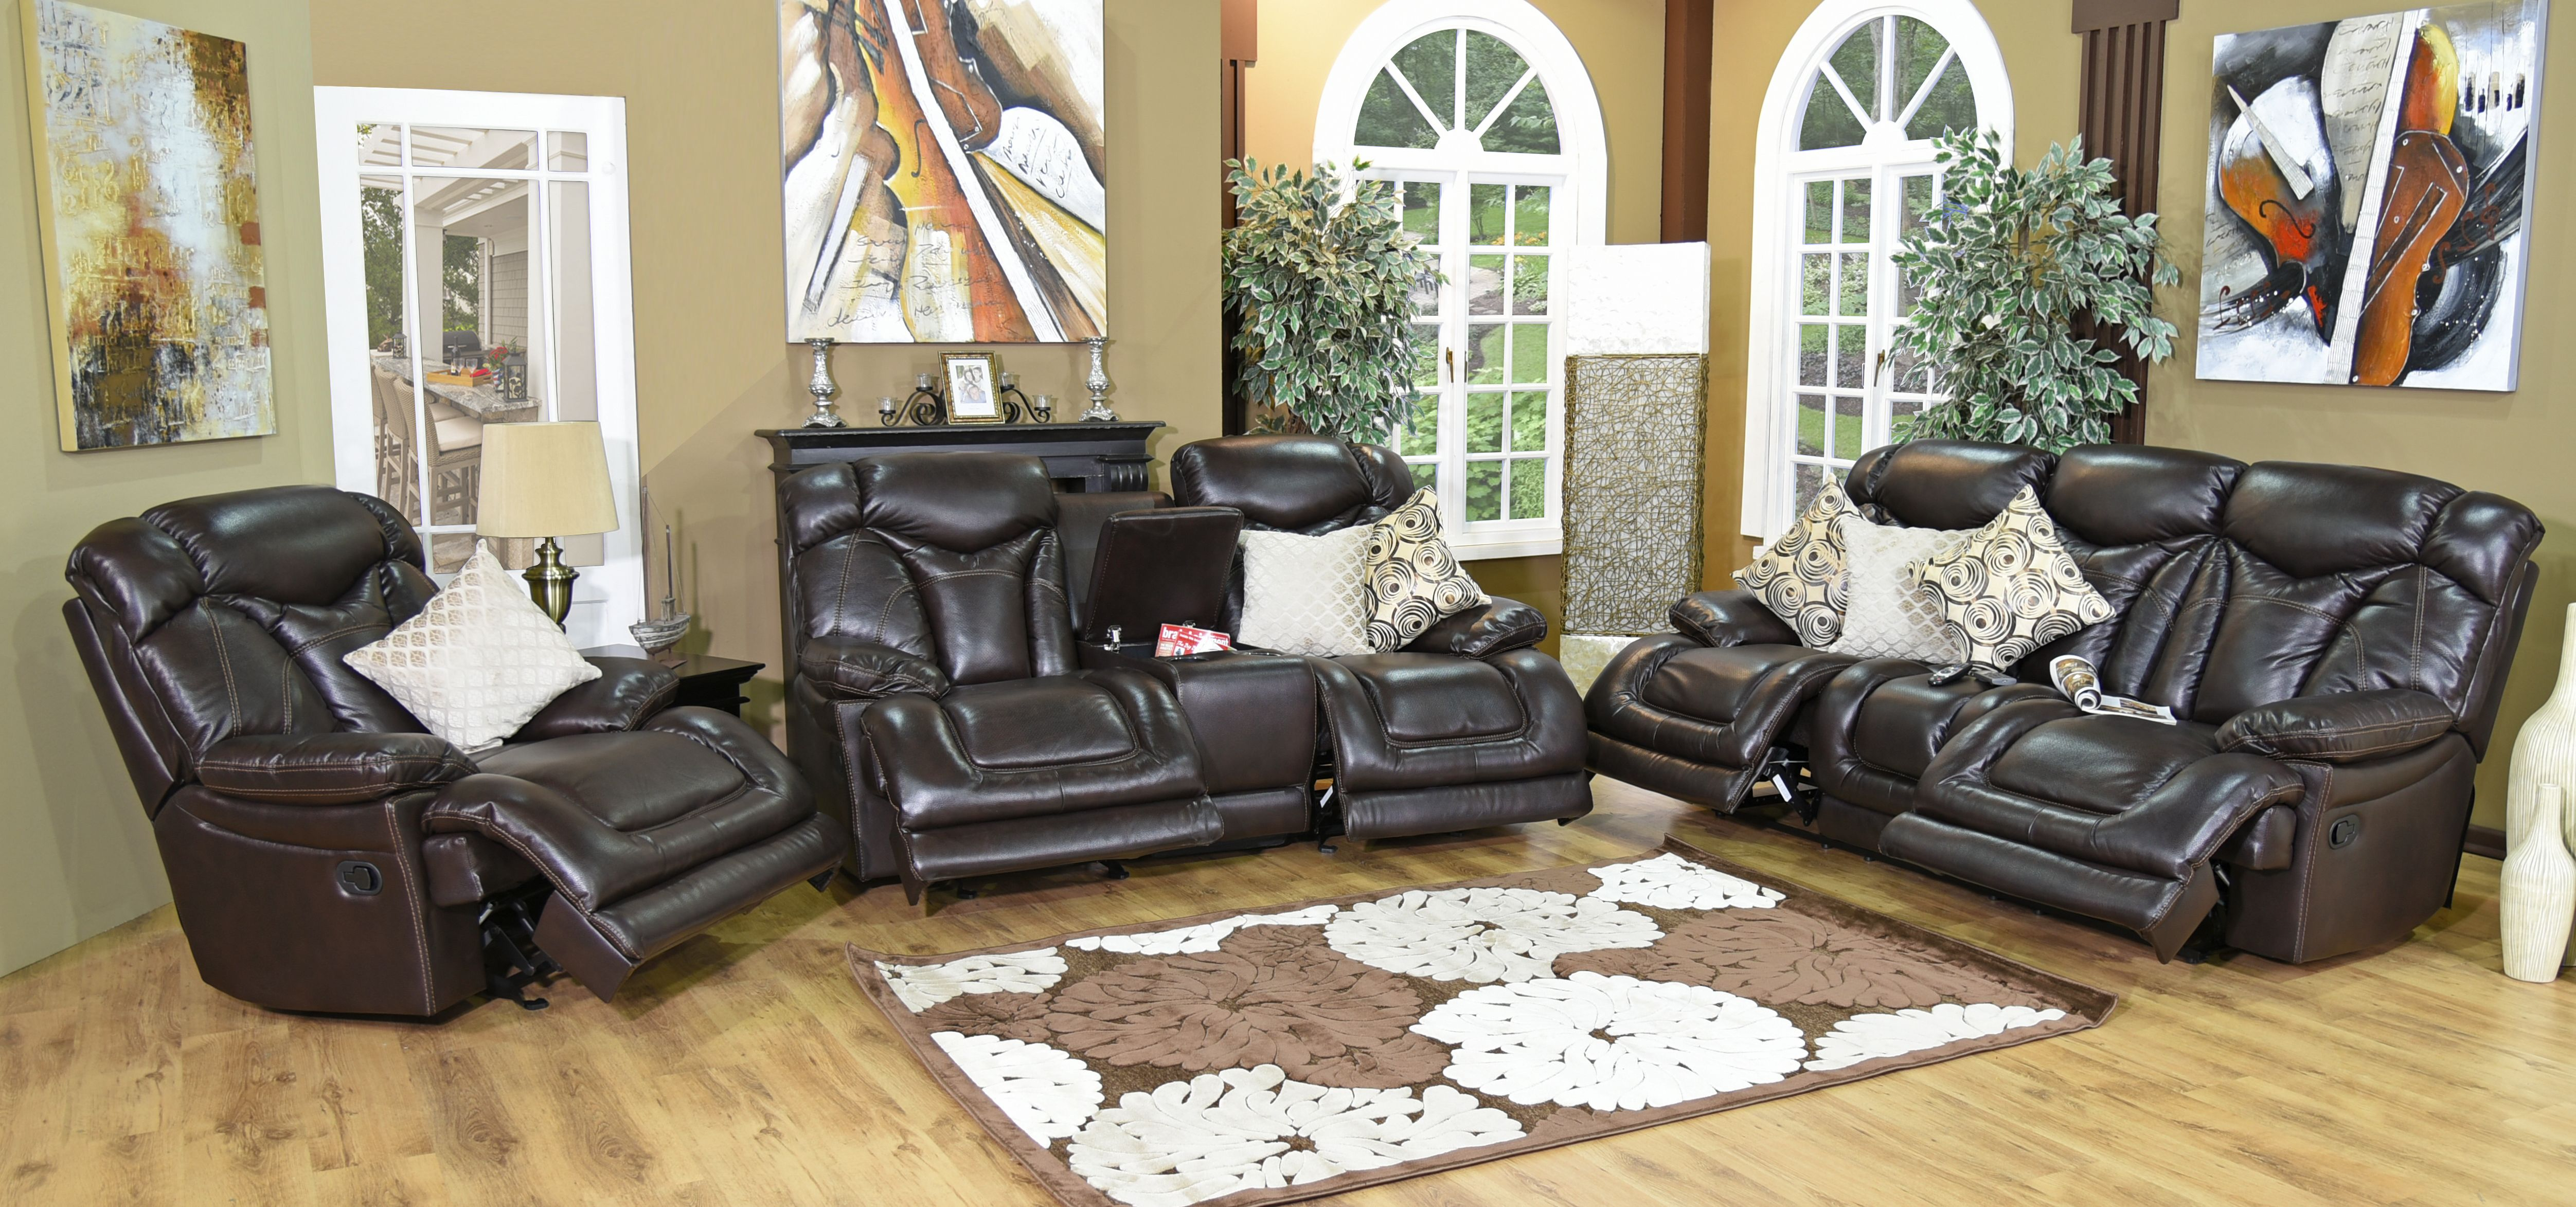 Lounge Suites Brisco Recliner Lounge Suite Lounge Suites Recliner Lounge